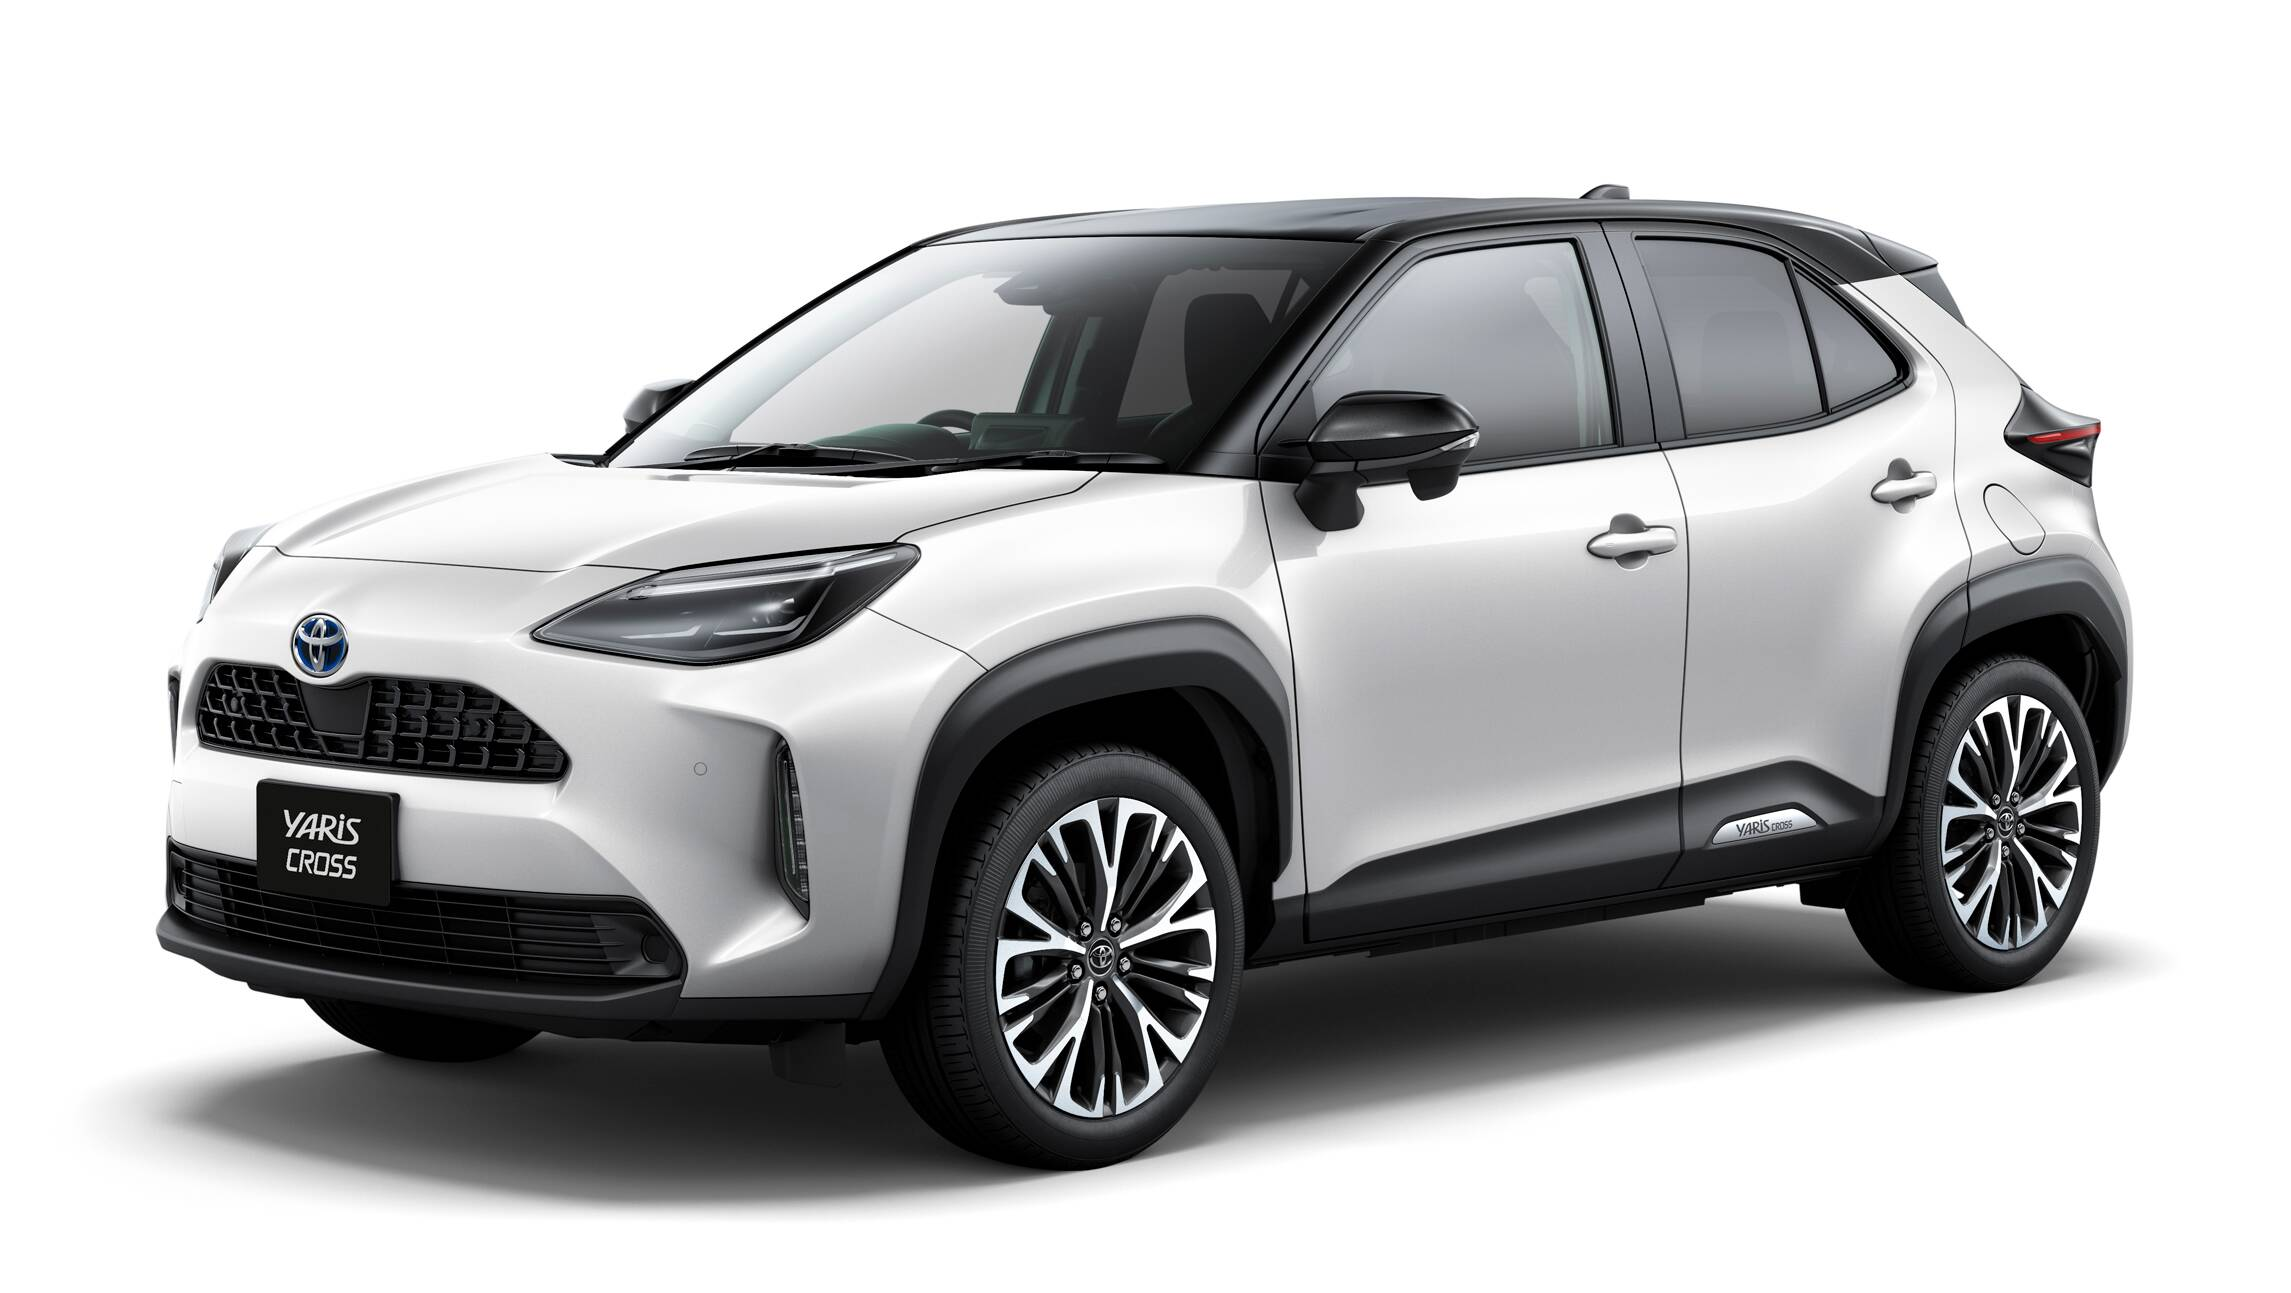 How Much Will You Pay For The New Toyota Yaris Cross 2021 Nz Pricing For Mazda Cx 3 Rival Confirmed Car News Carsguide